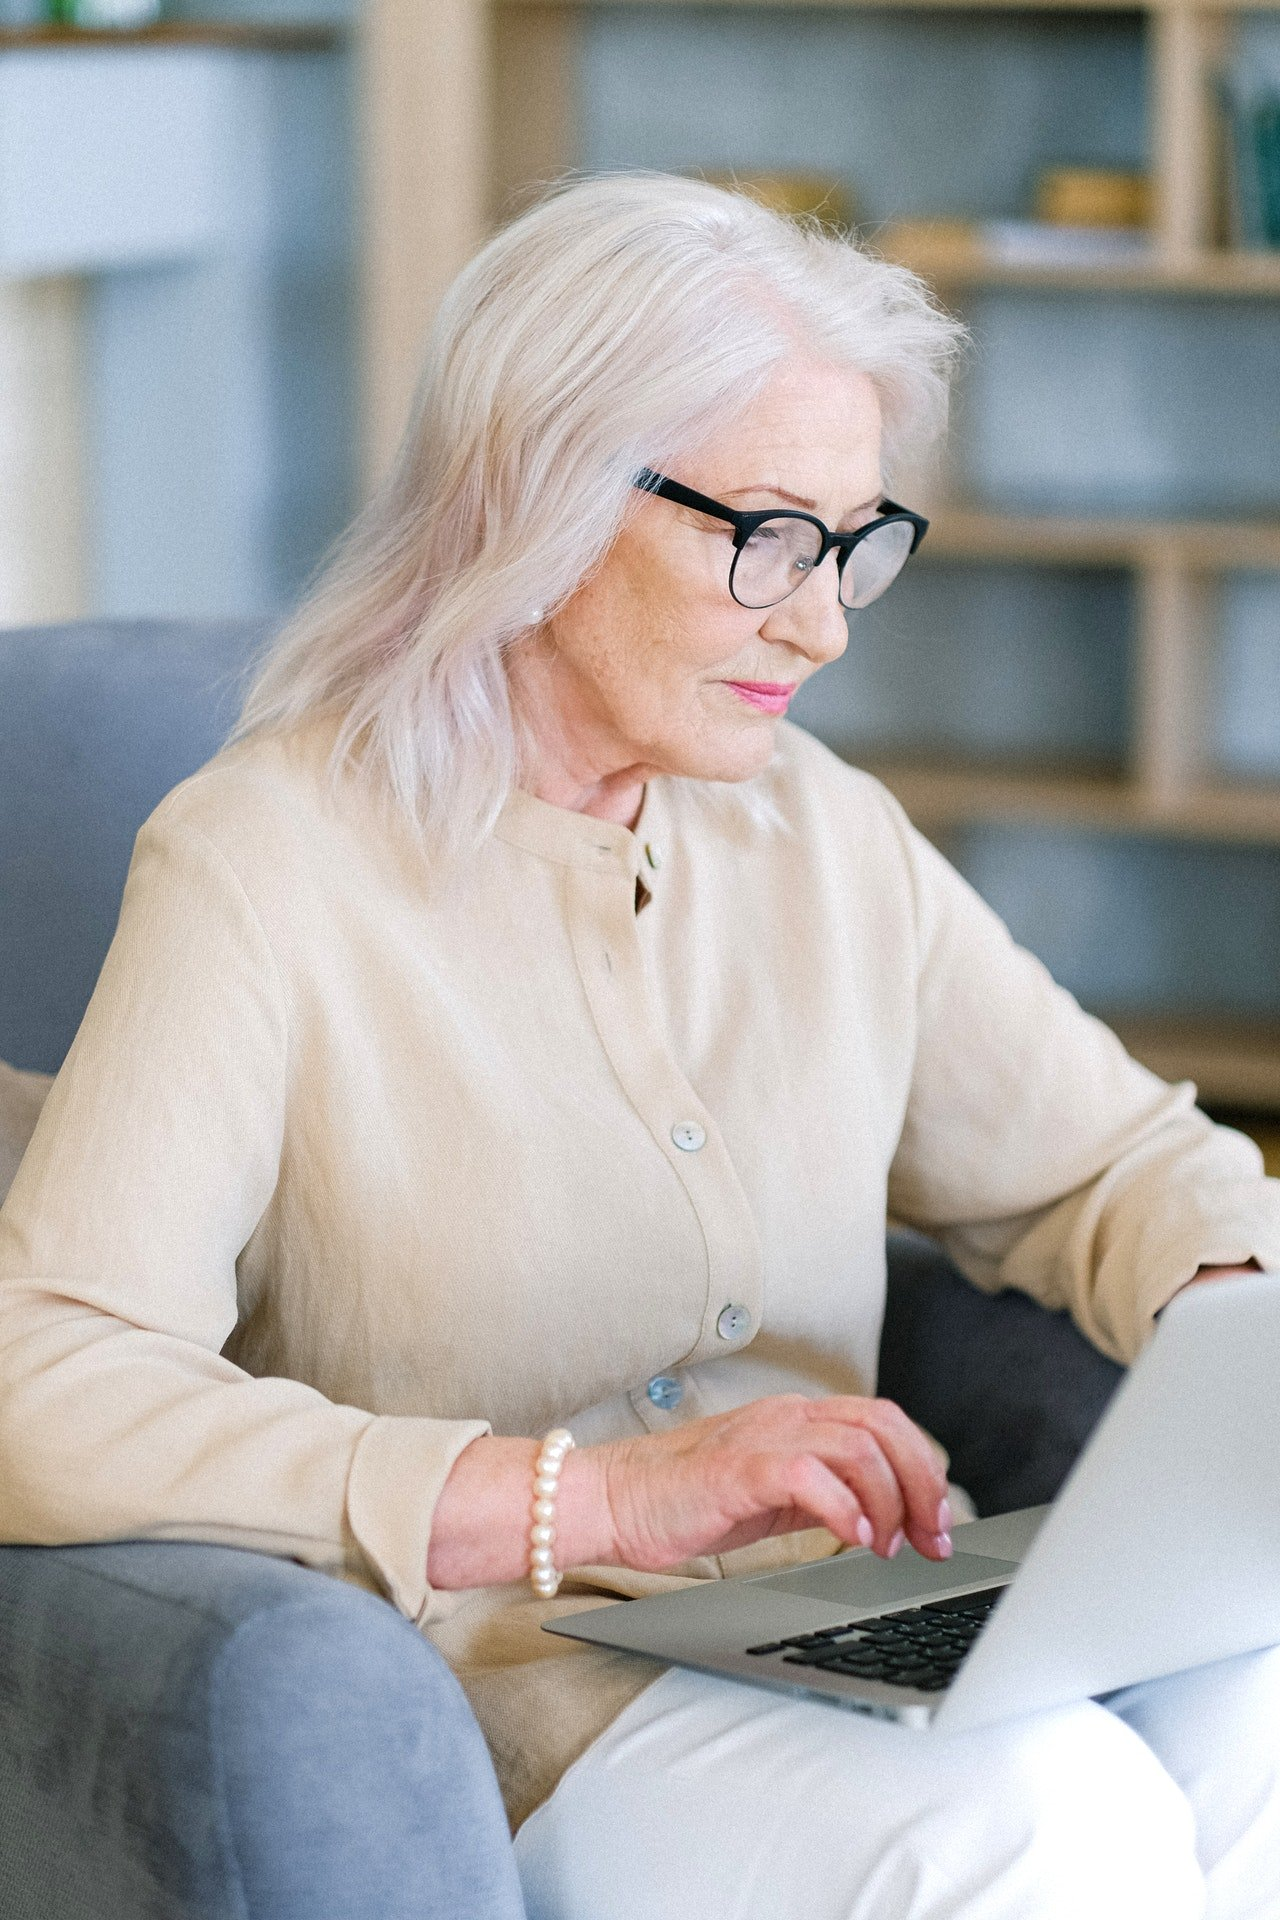 Leah was browsing the community's Facebook page for events. | Source: Pexels